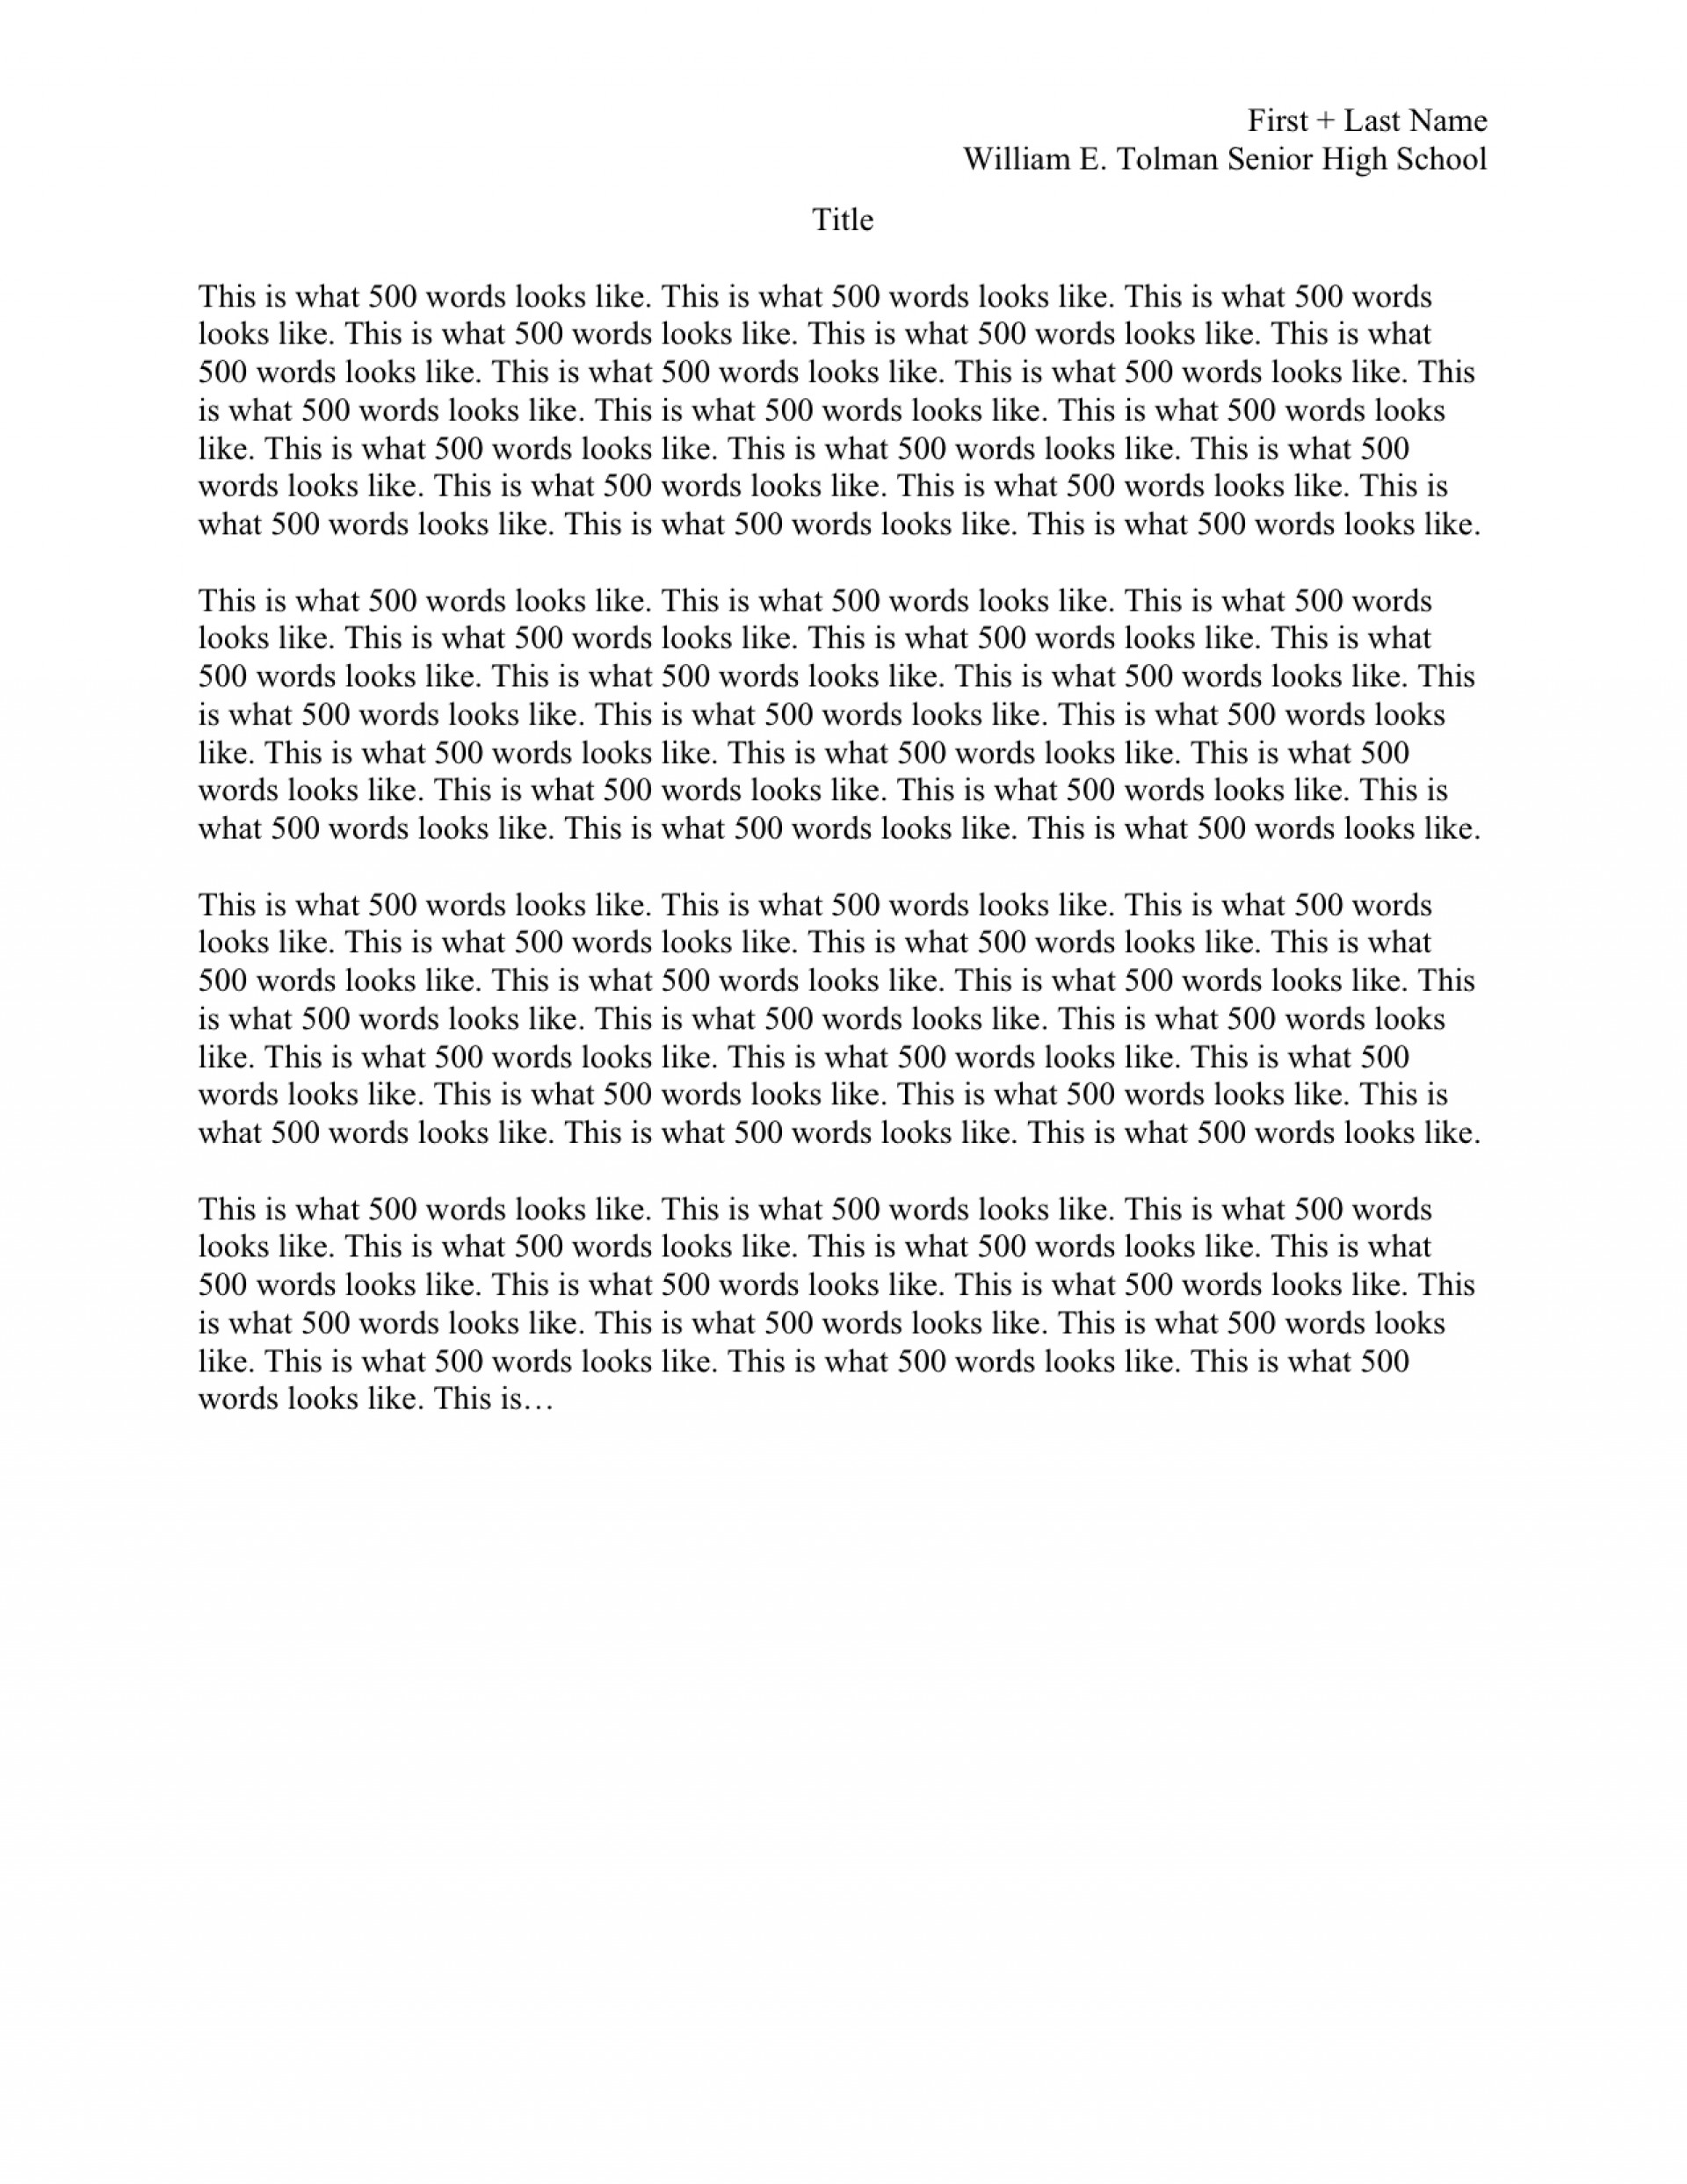 012 How To Format College Application Essay Format1 Awesome A Set Up My Your 1920